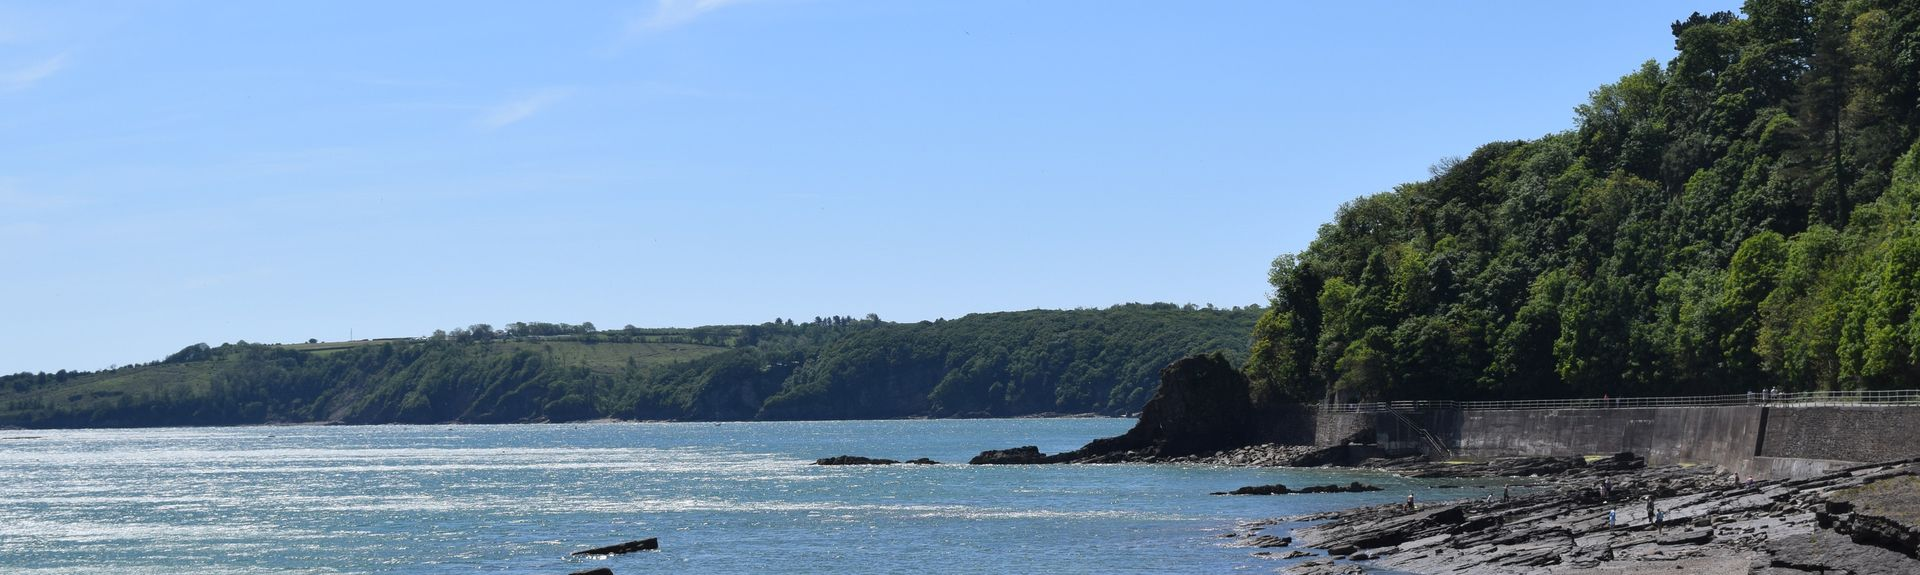 Stackpole, Pembrokeshire, UK